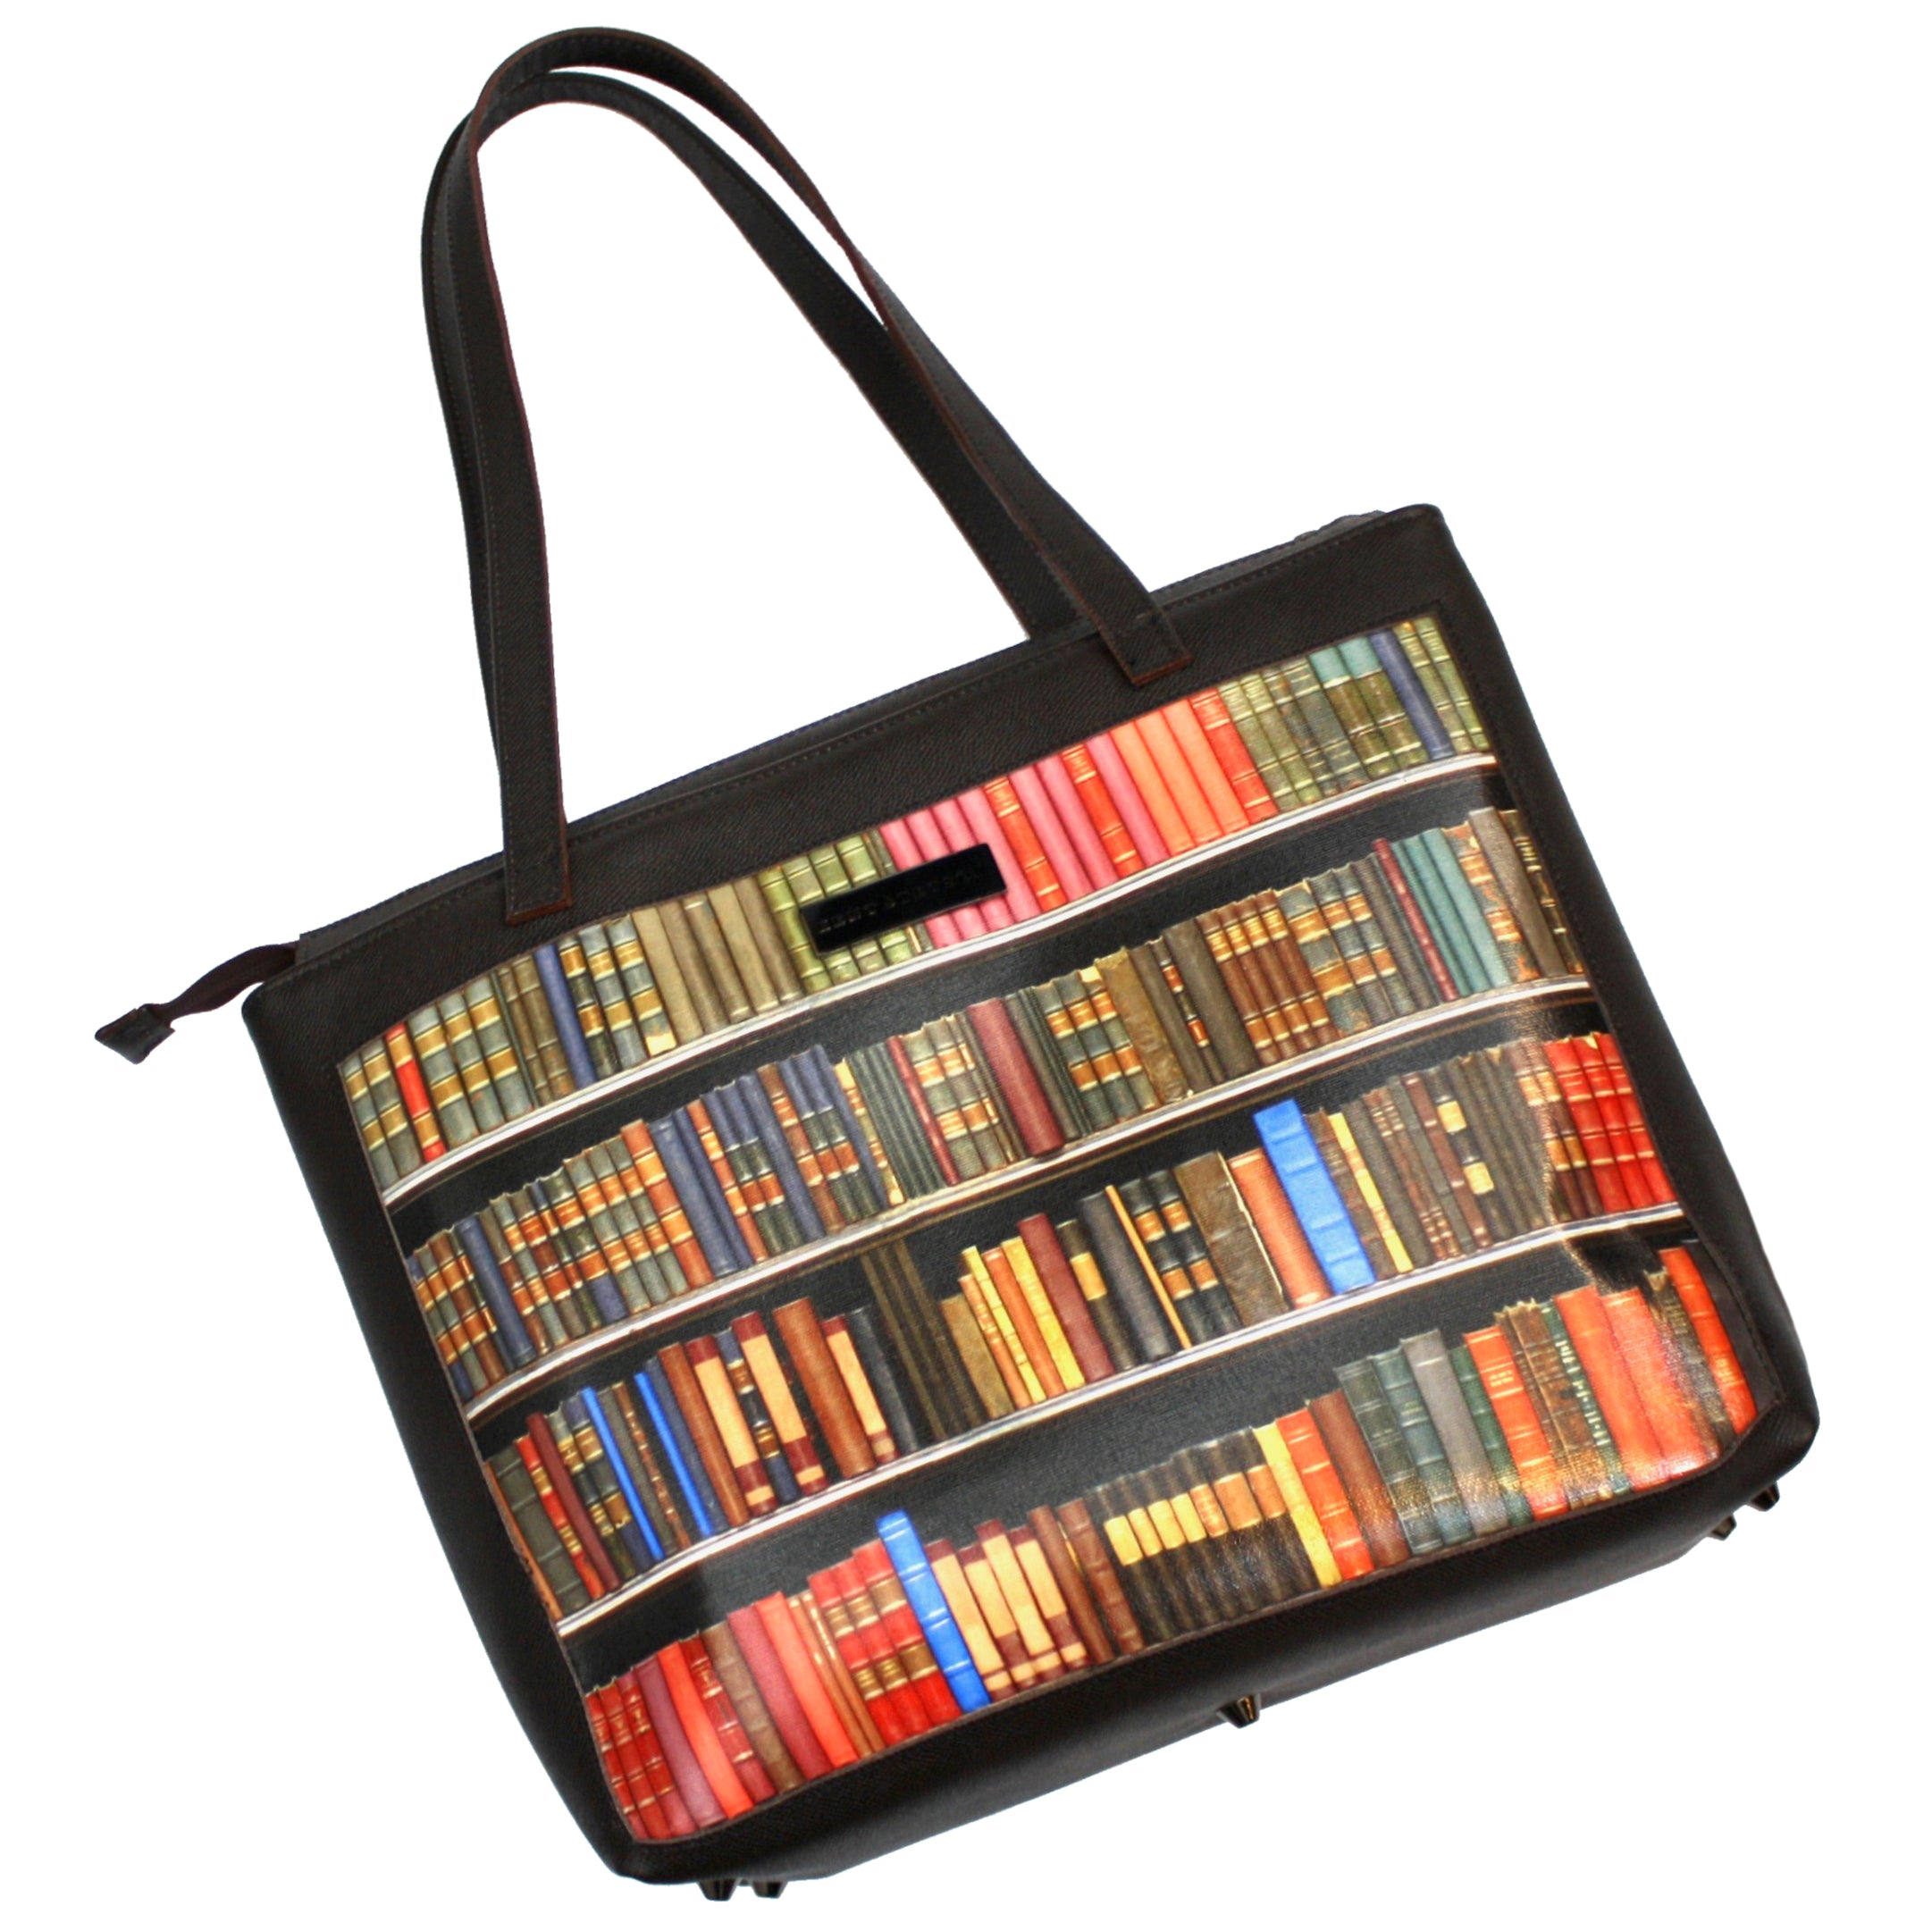 Library Tote